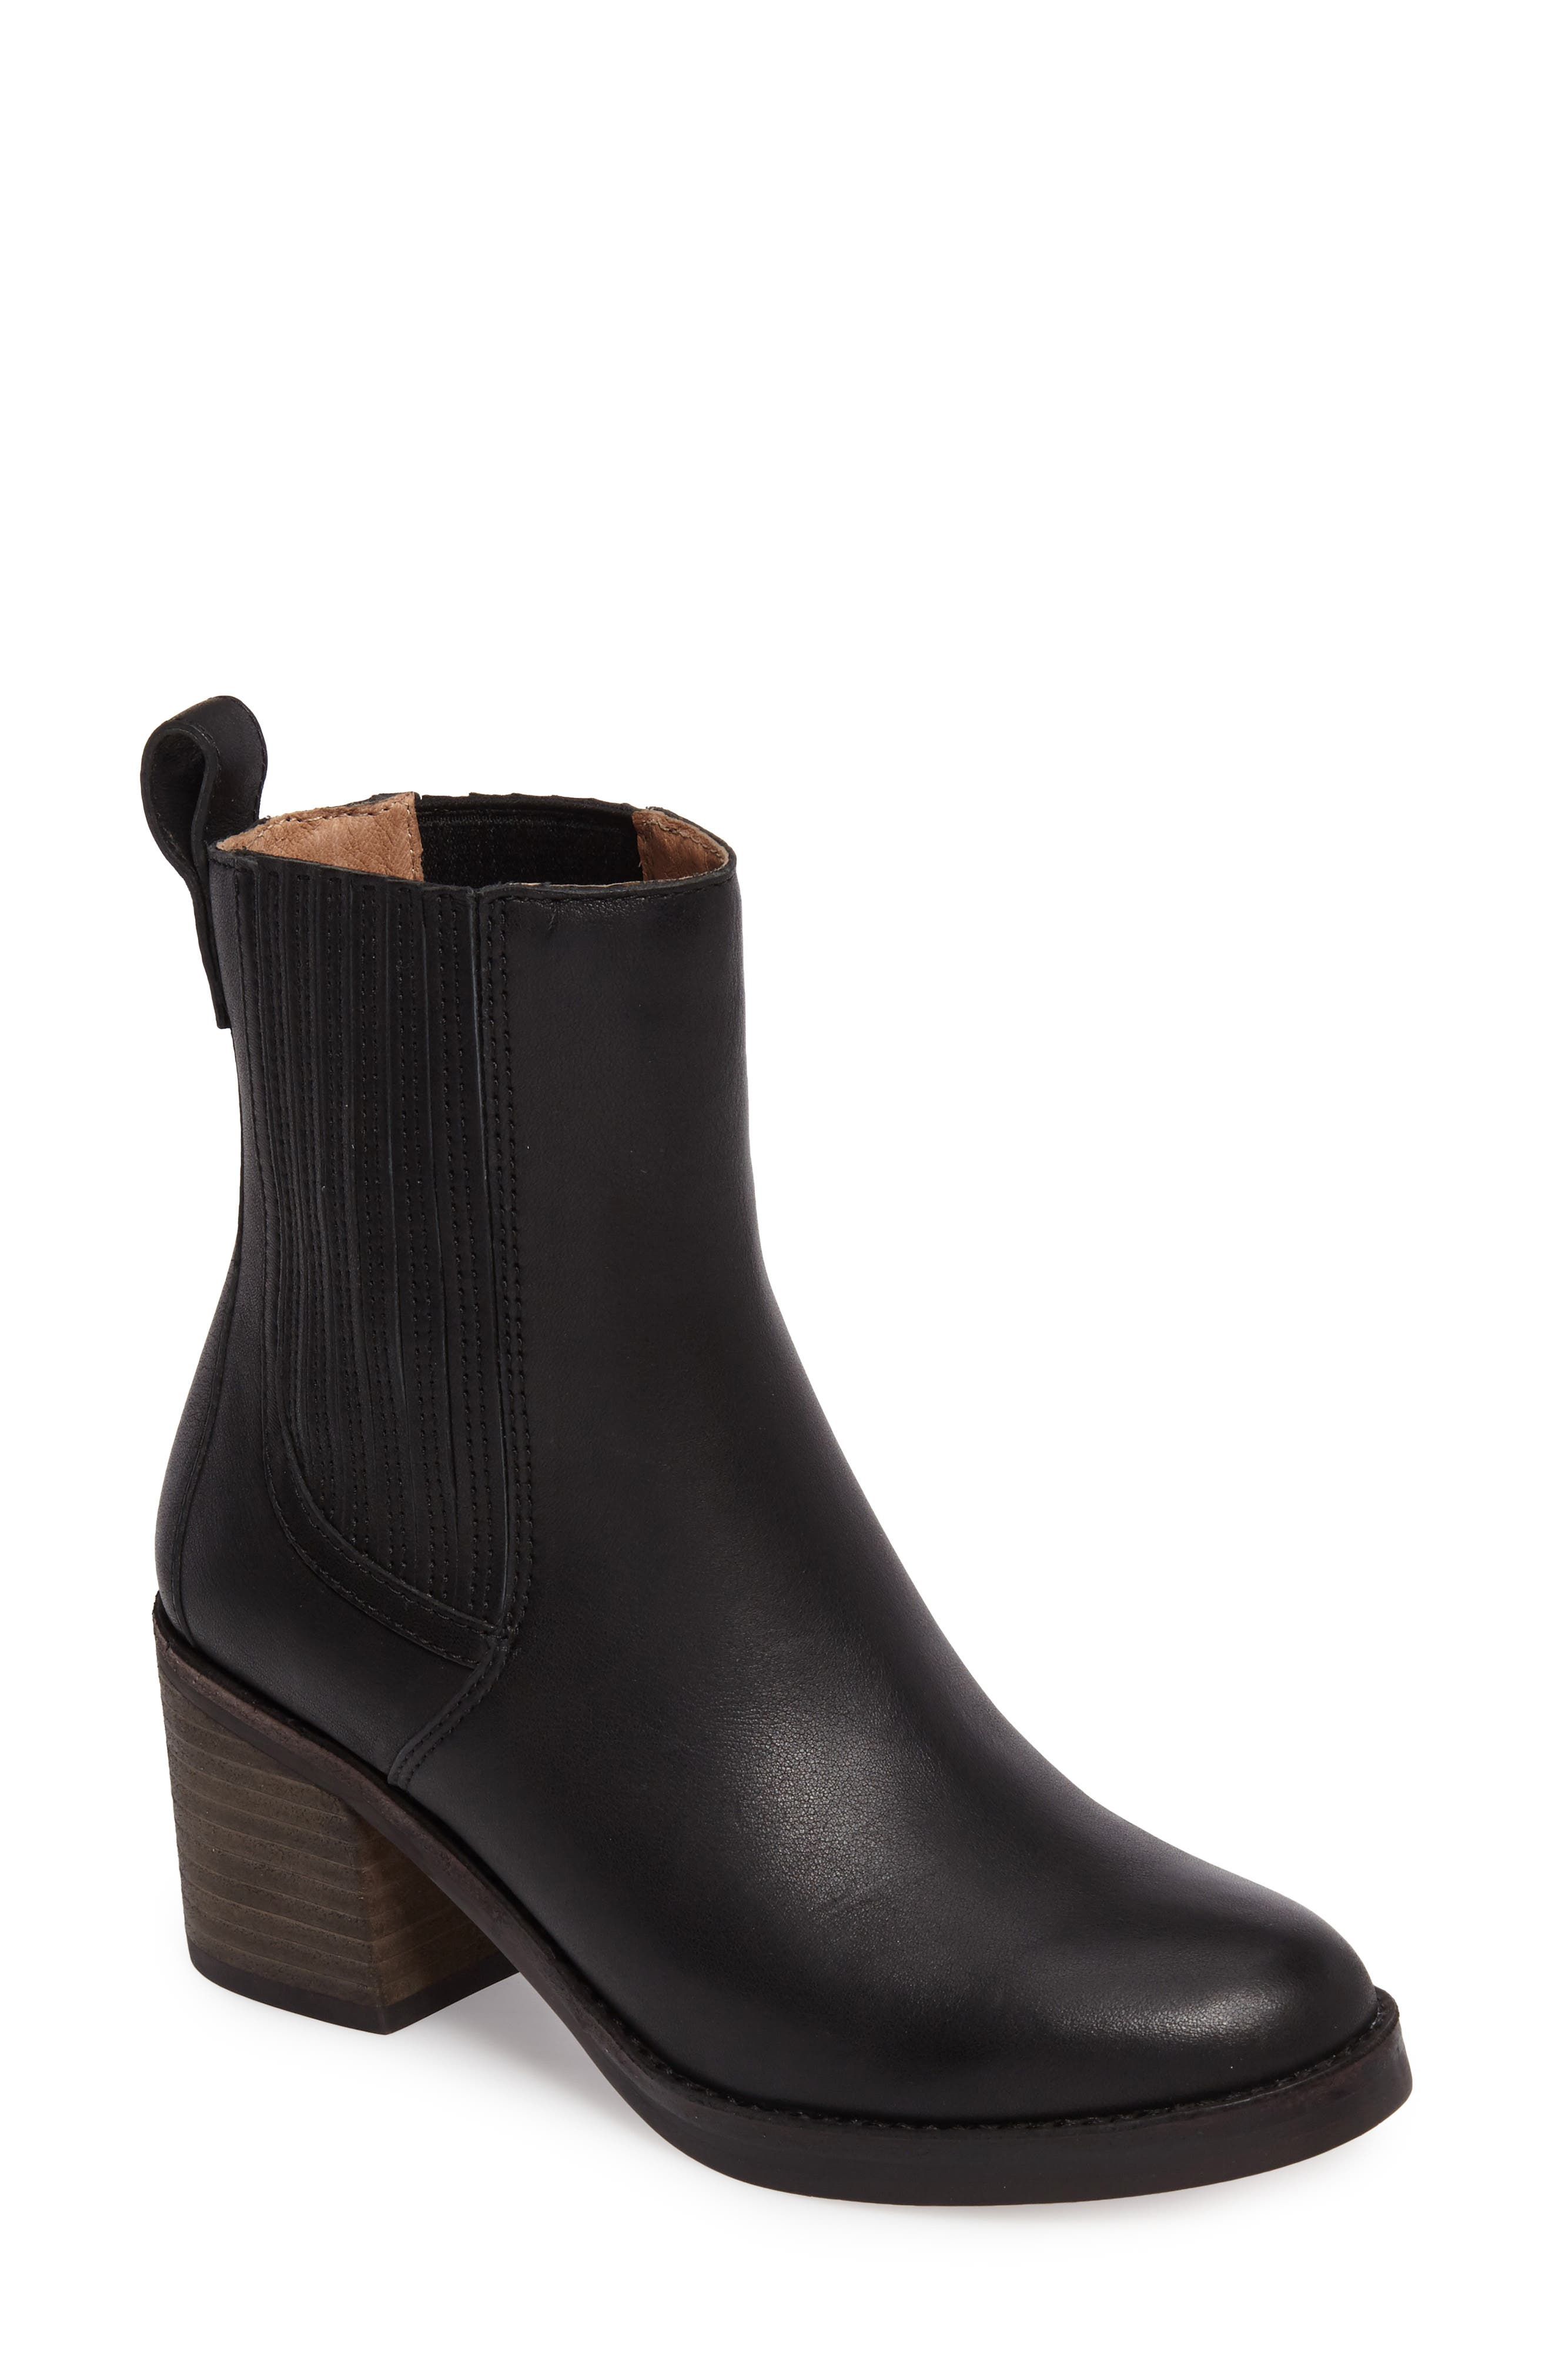 Camden Chelsea Boot,                         Main,                         color, Black Leather